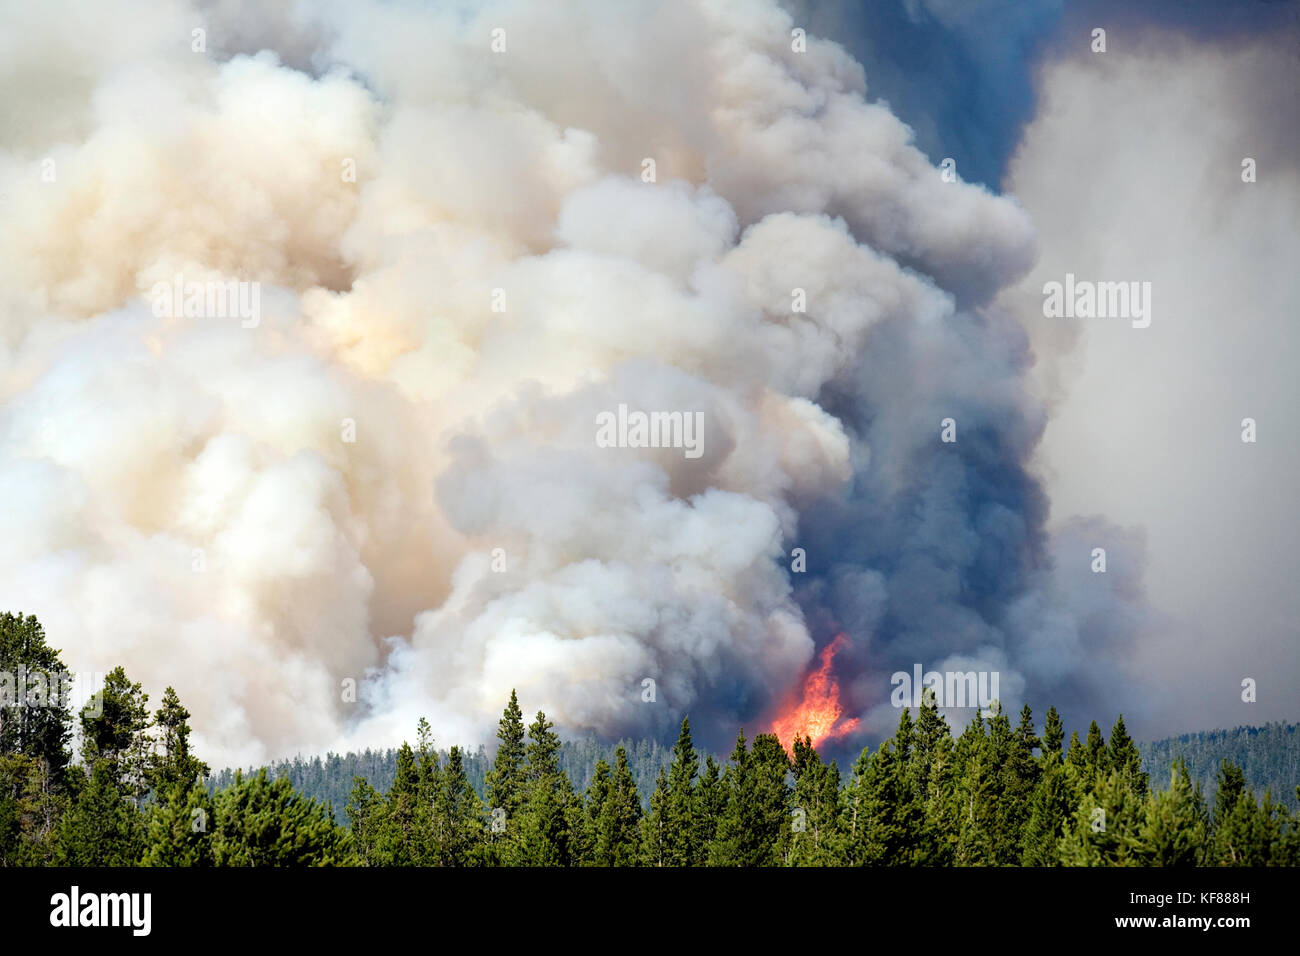 USA, Wyoming, forest fire, Fishing Bridge, Yellowstone National Park - Stock Image